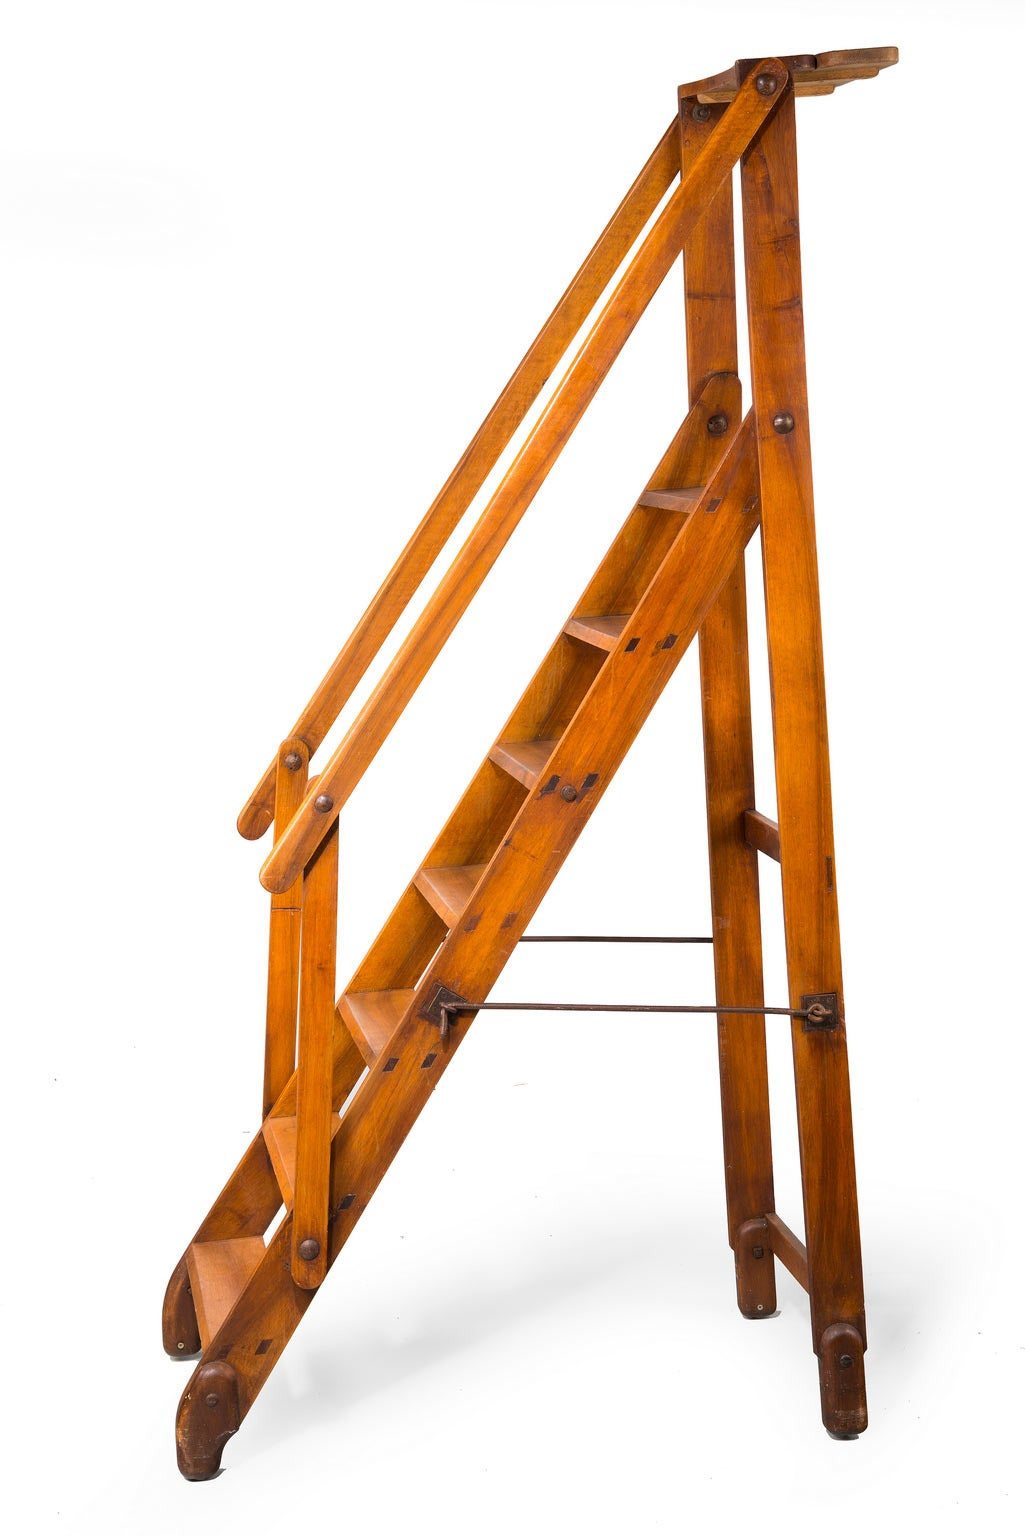 library chair ladder plans outdoor patio table and chairs cover early 20th century walnut folding at 1stdibs